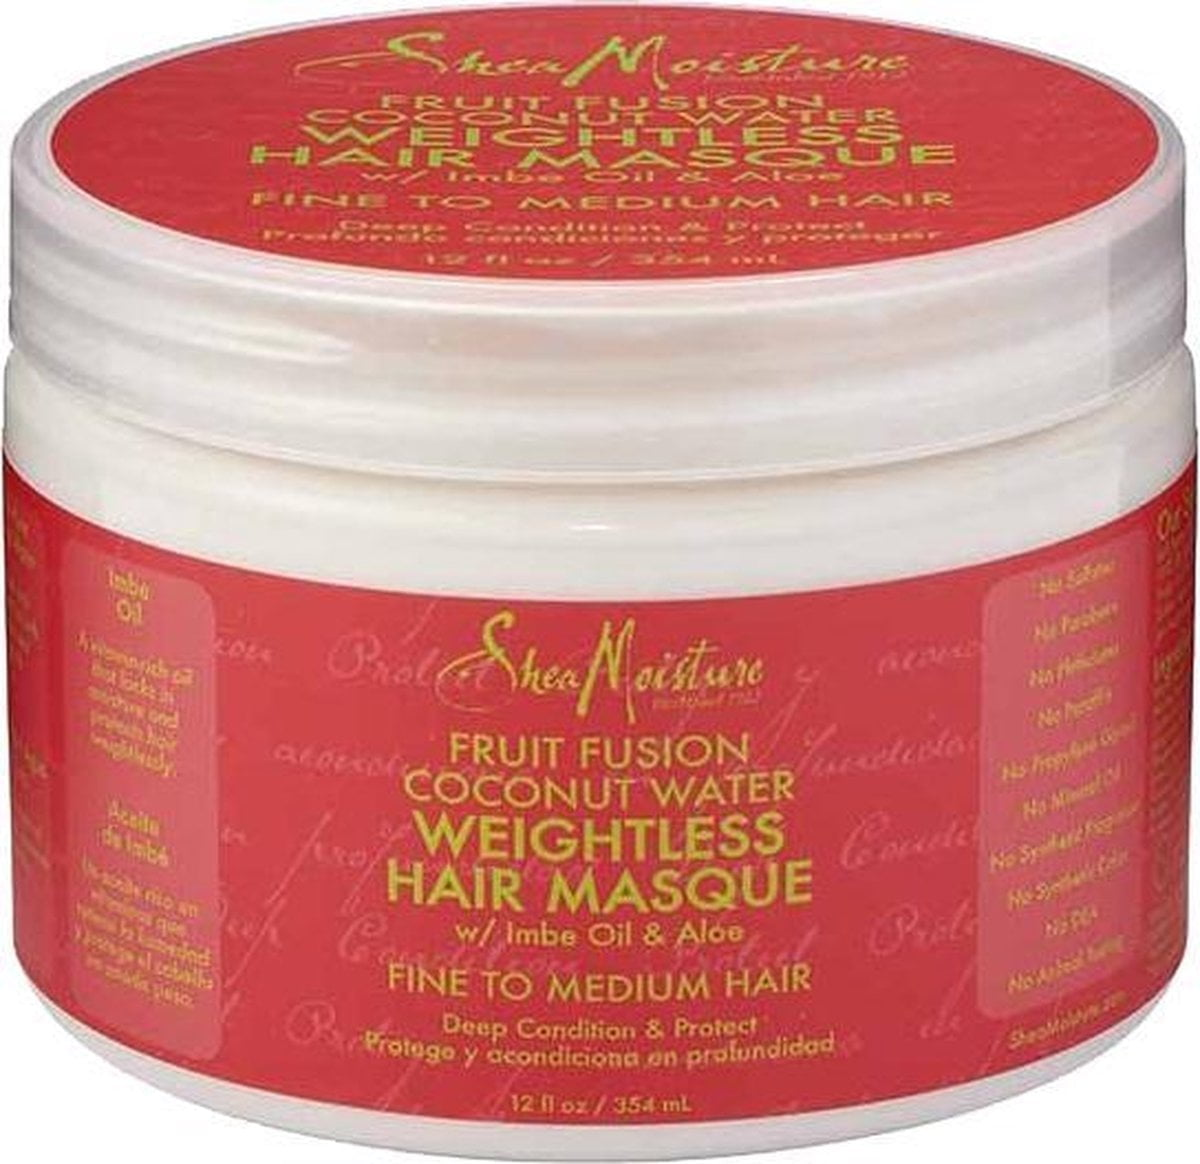 Shea Moisture Fruit Fusion Coconut Water Weightless Hair Masque 354 ml